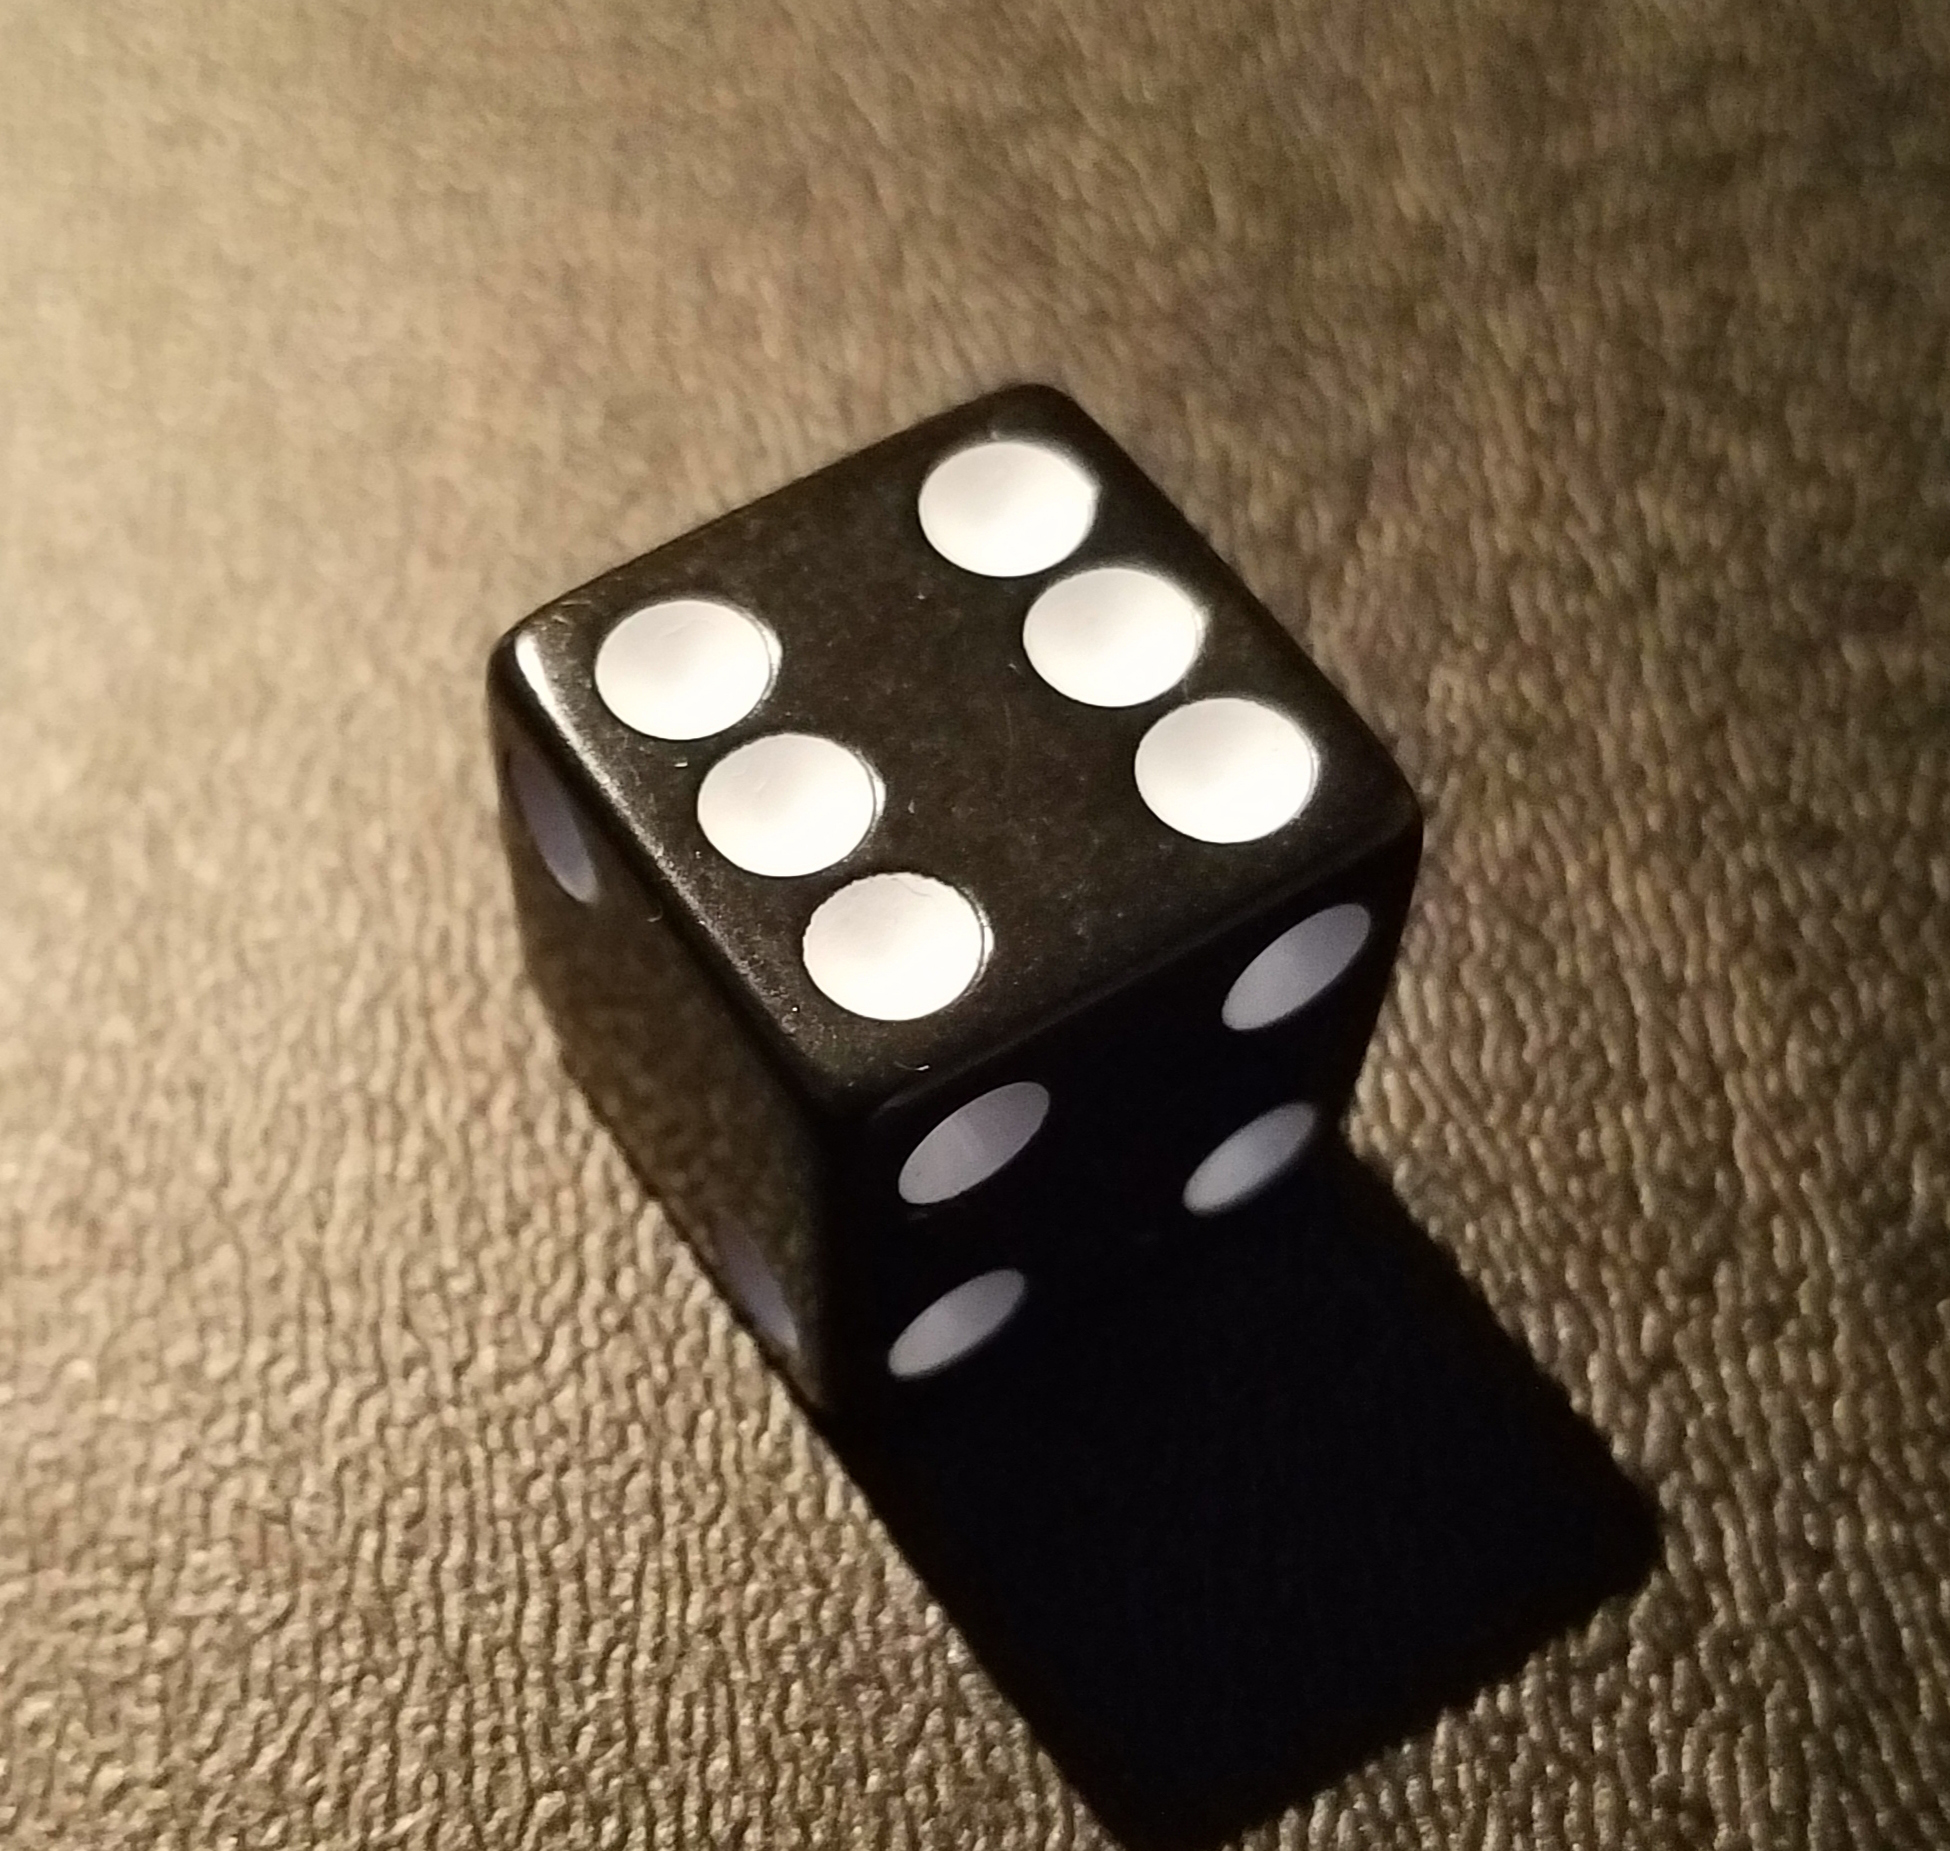 6-Sided Die